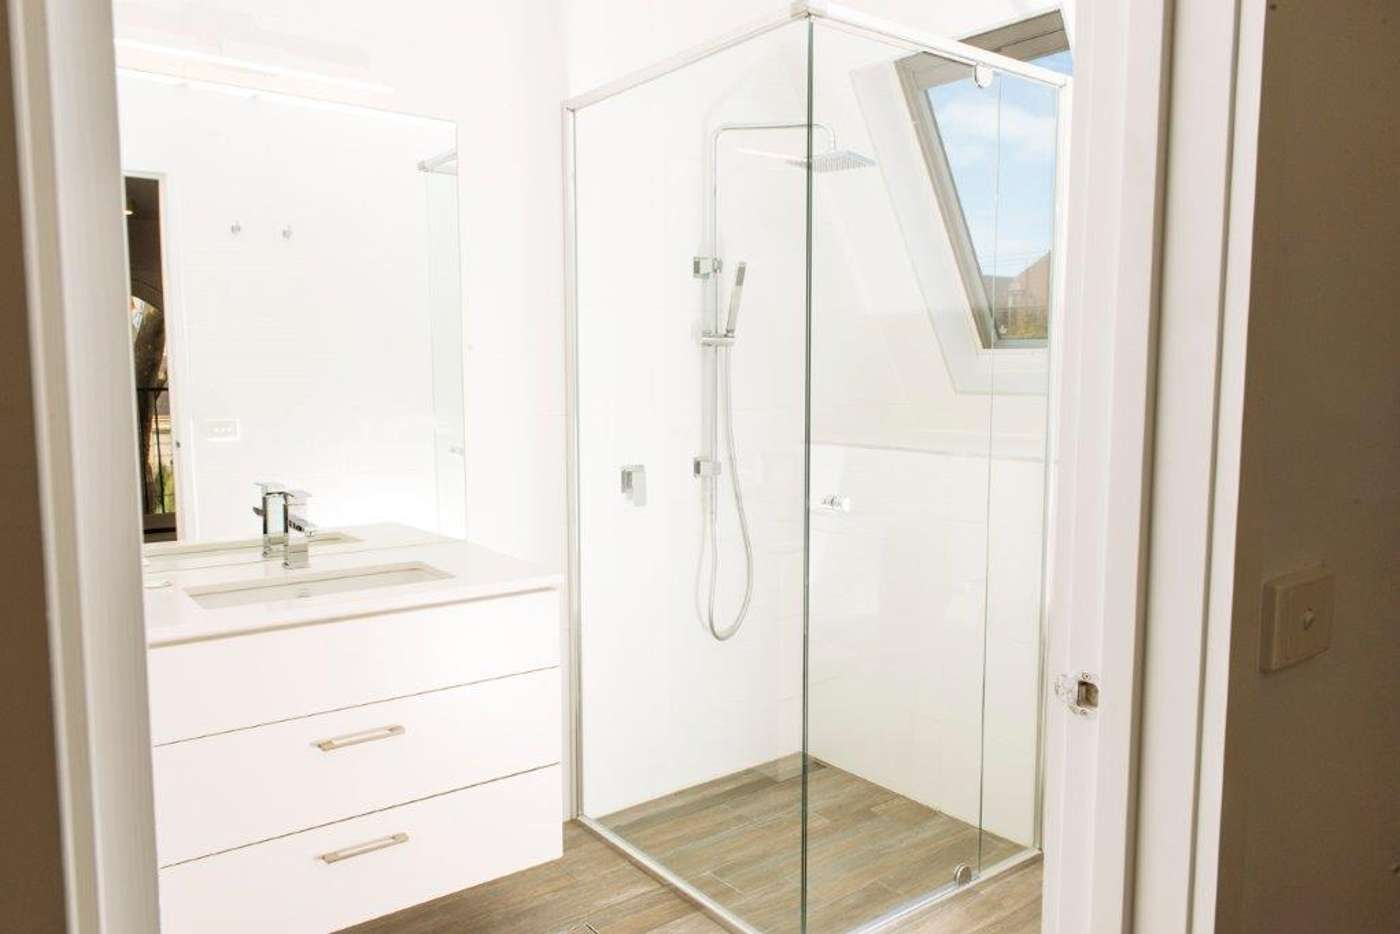 Sixth view of Homely apartment listing, 7/2 Seymour  Avenue, Armadale VIC 3143